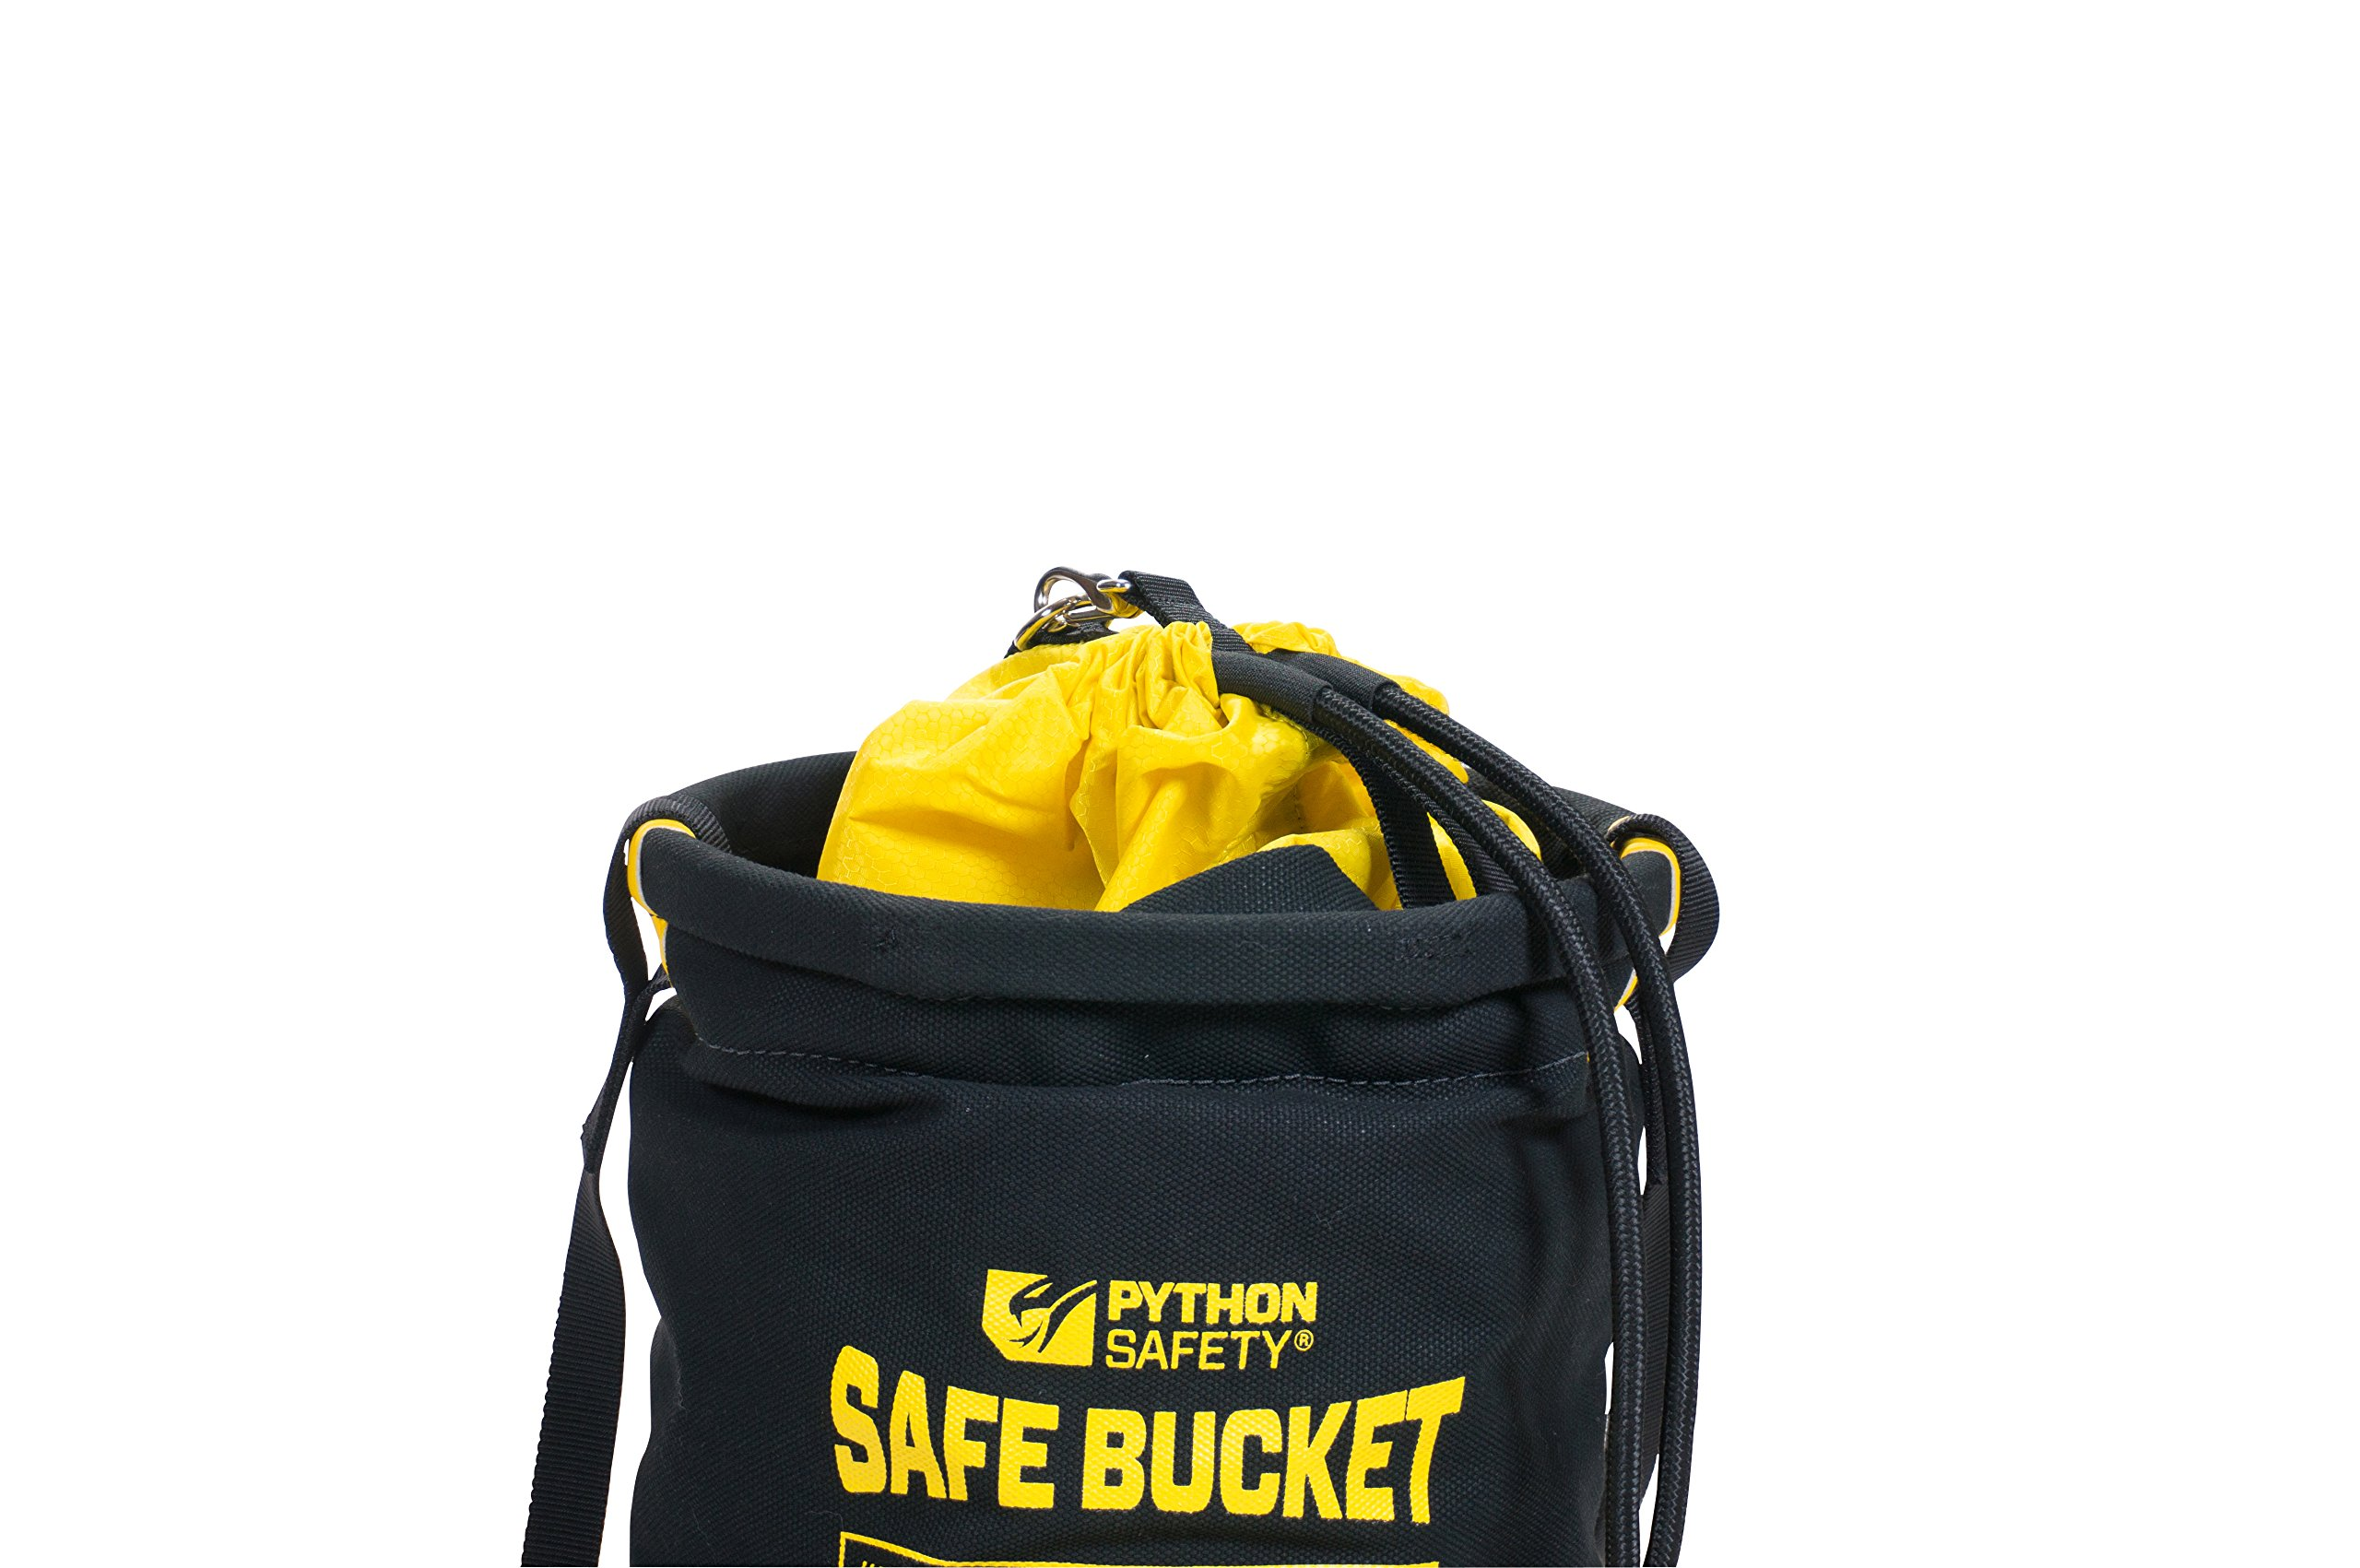 3M DBI-SALA Fall Protection For Tools,1500133, Canvas Spill Control Safe Bucket w/6 D-Ring Connection Points, 15''X125, Drawstring Closure System,100 lb Load Rating